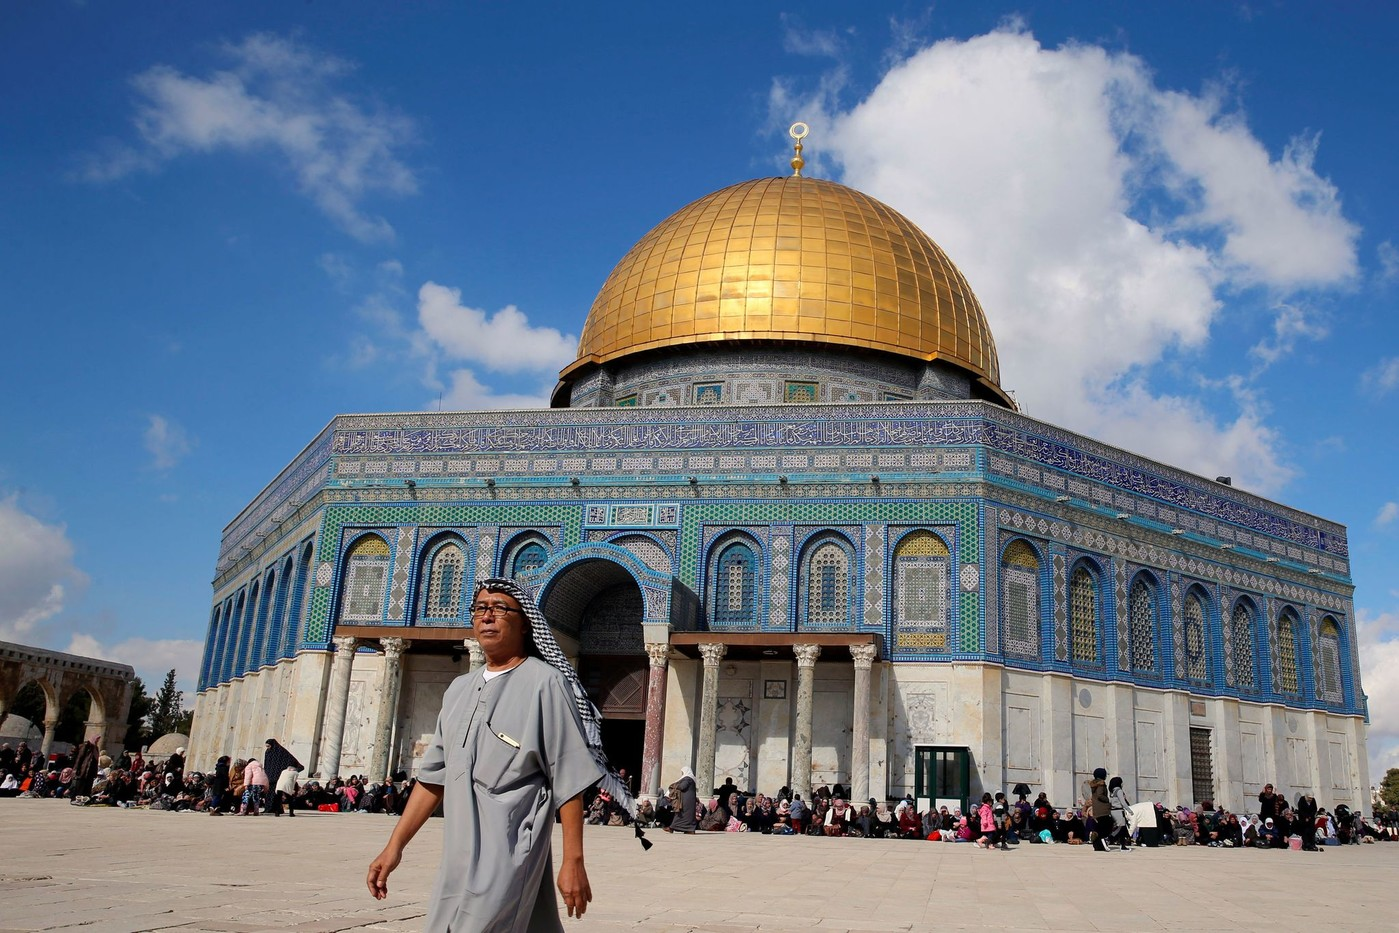 Changing Jerusalem Status will Fan the Flames of Religious, Ideological conflicts, Mohammed VI Warns